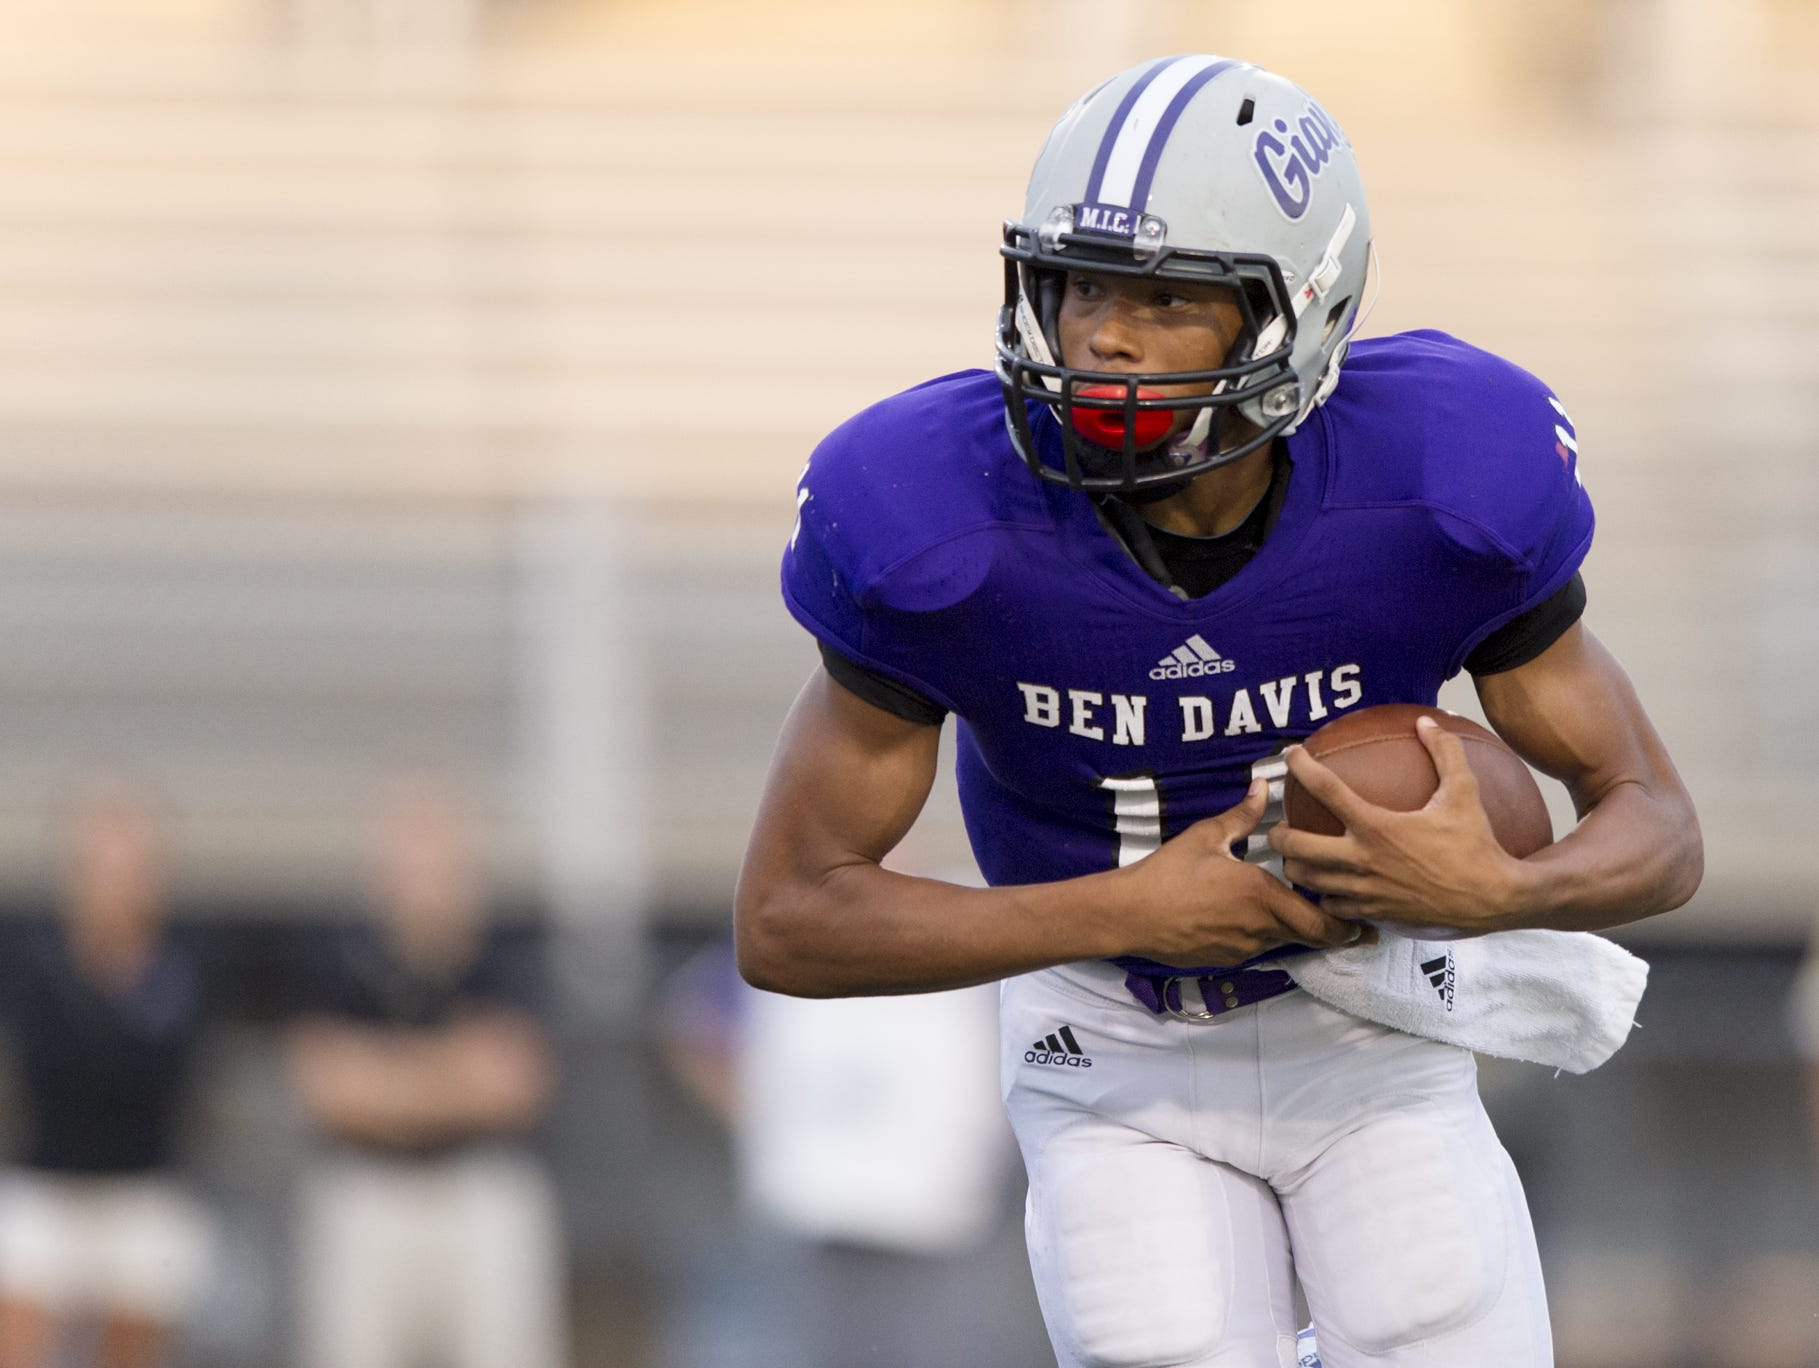 Ben Davis High School sophomore Reese Taylor (11) looks for a hole in the line as he rushes the ball up field during first-half action of a IHSAA varsity football game at Ben Davis High School, Friday, September 18, 2015.